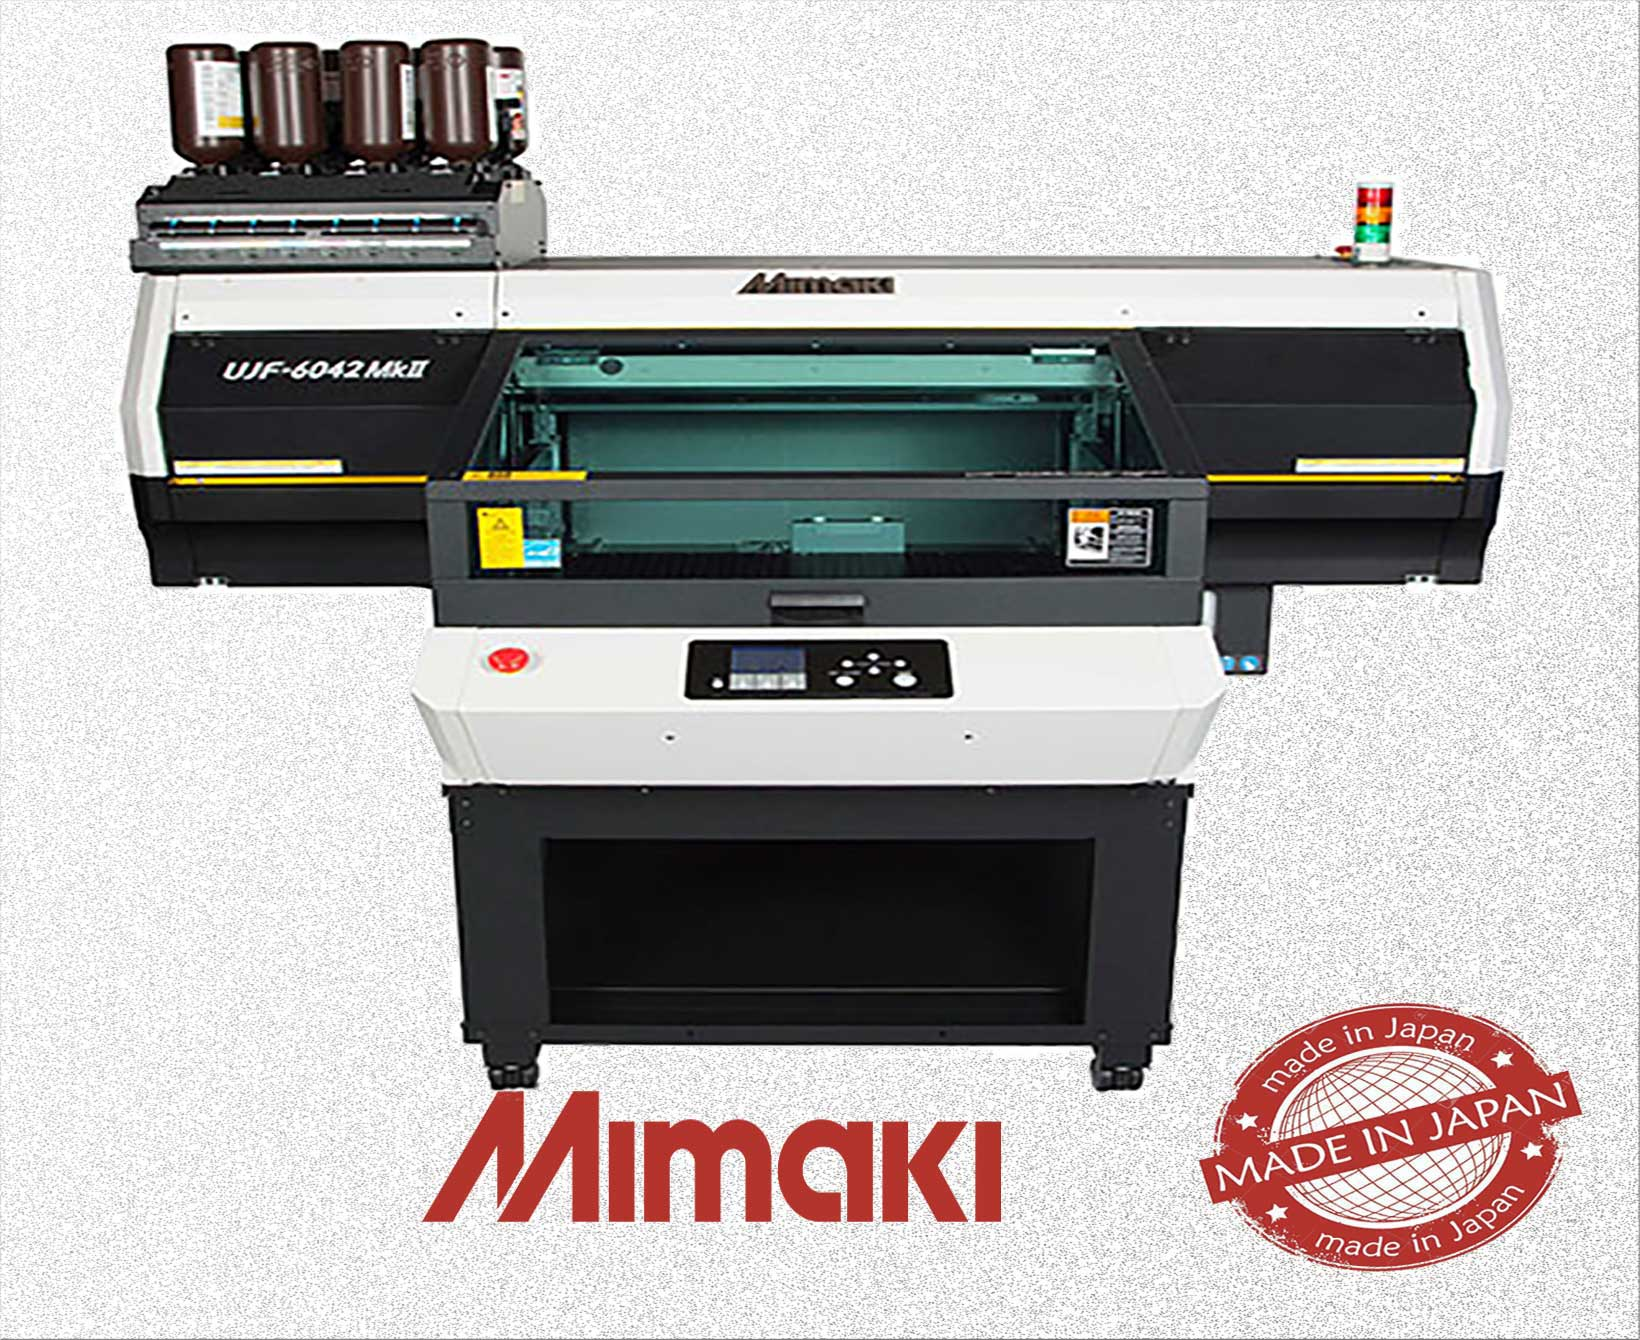 Mimaki  UJF-6042MkII - Printer